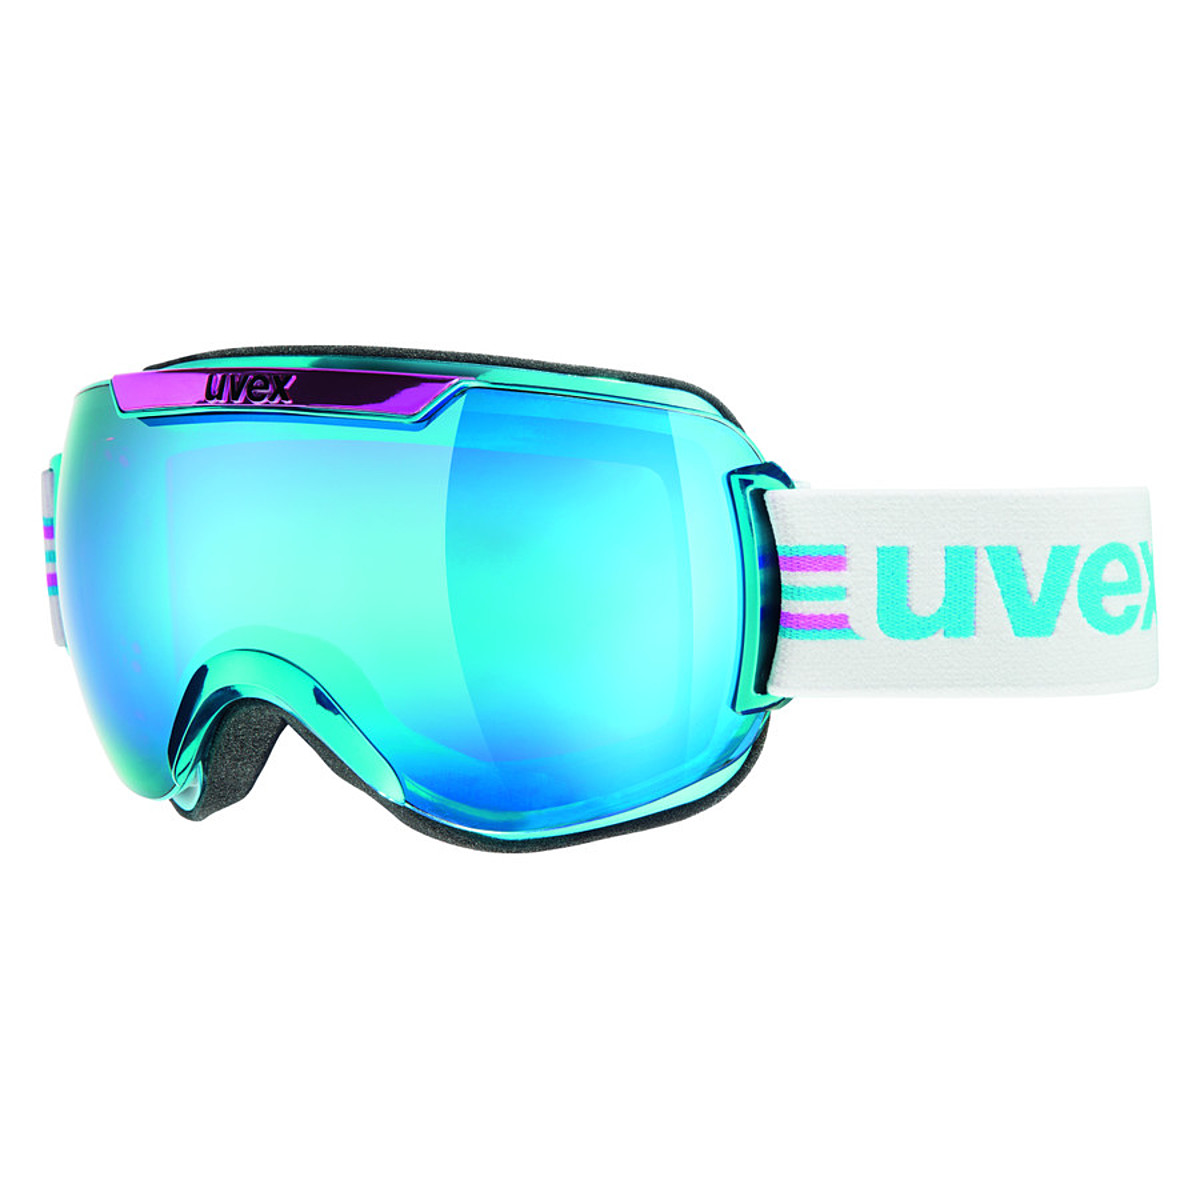 Uvex Downhill 2000 Race Chrome Goggle